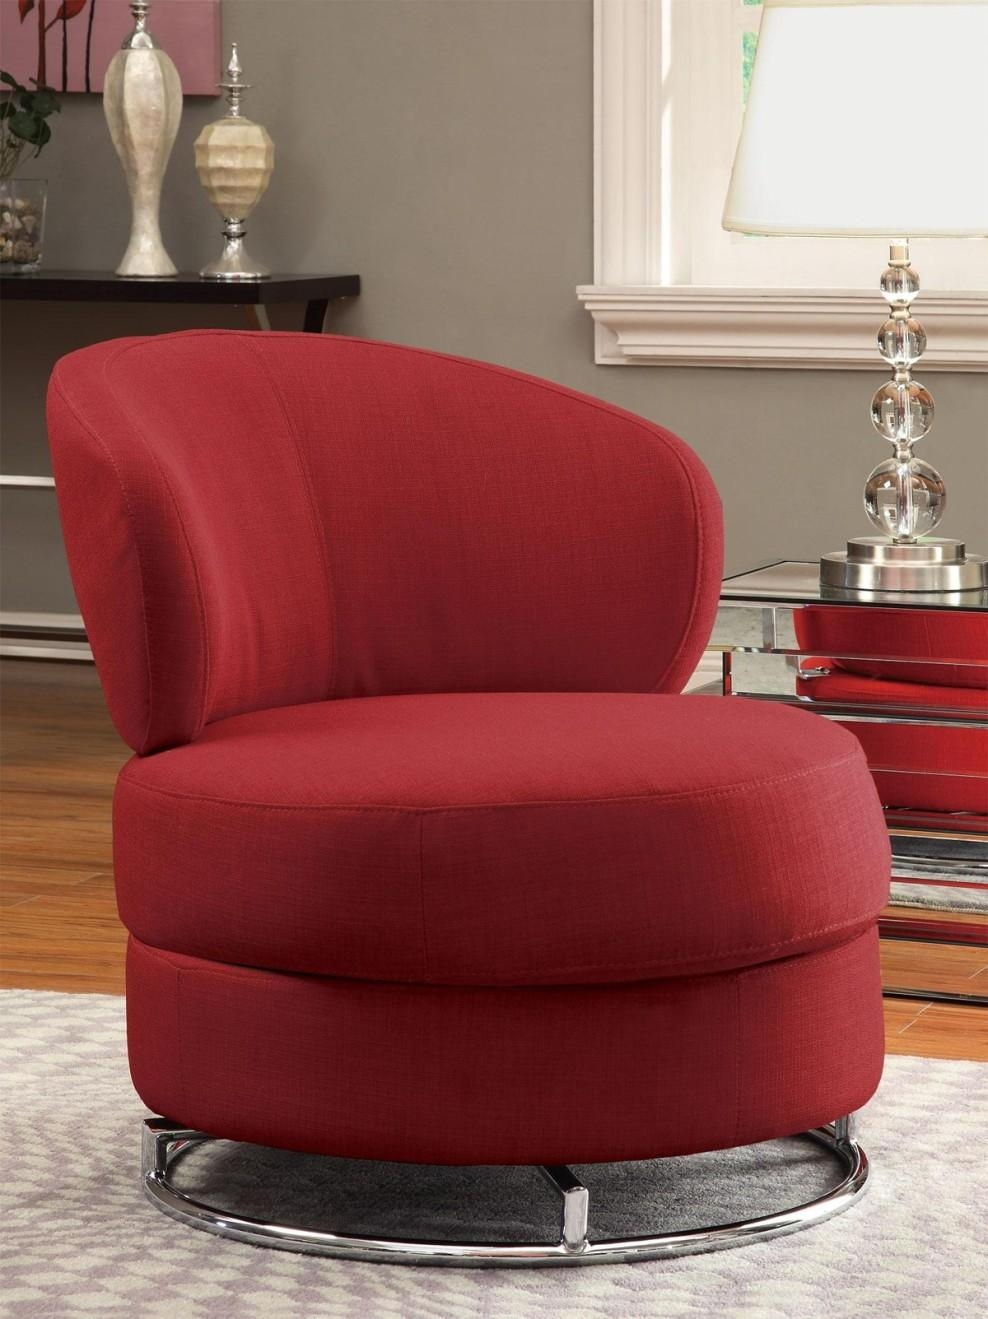 Round Sofa Chair Living Room Furniture | Vivo Furniture With Circular Sofa Chairs (View 17 of 20)